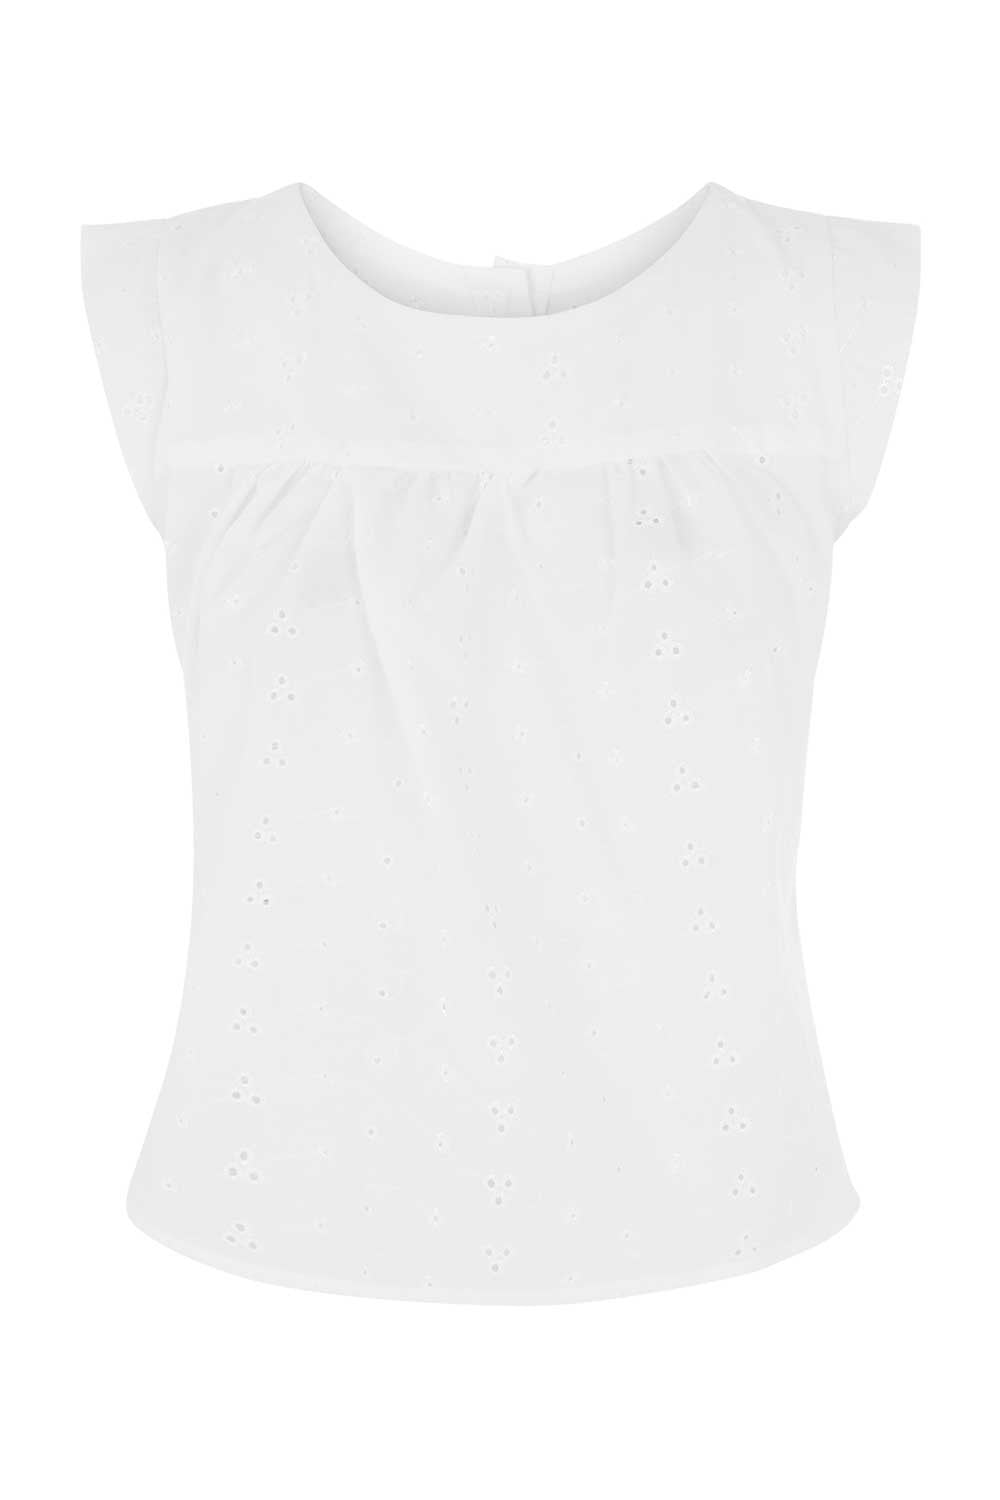 The Smock Top - Broderie Anglaise